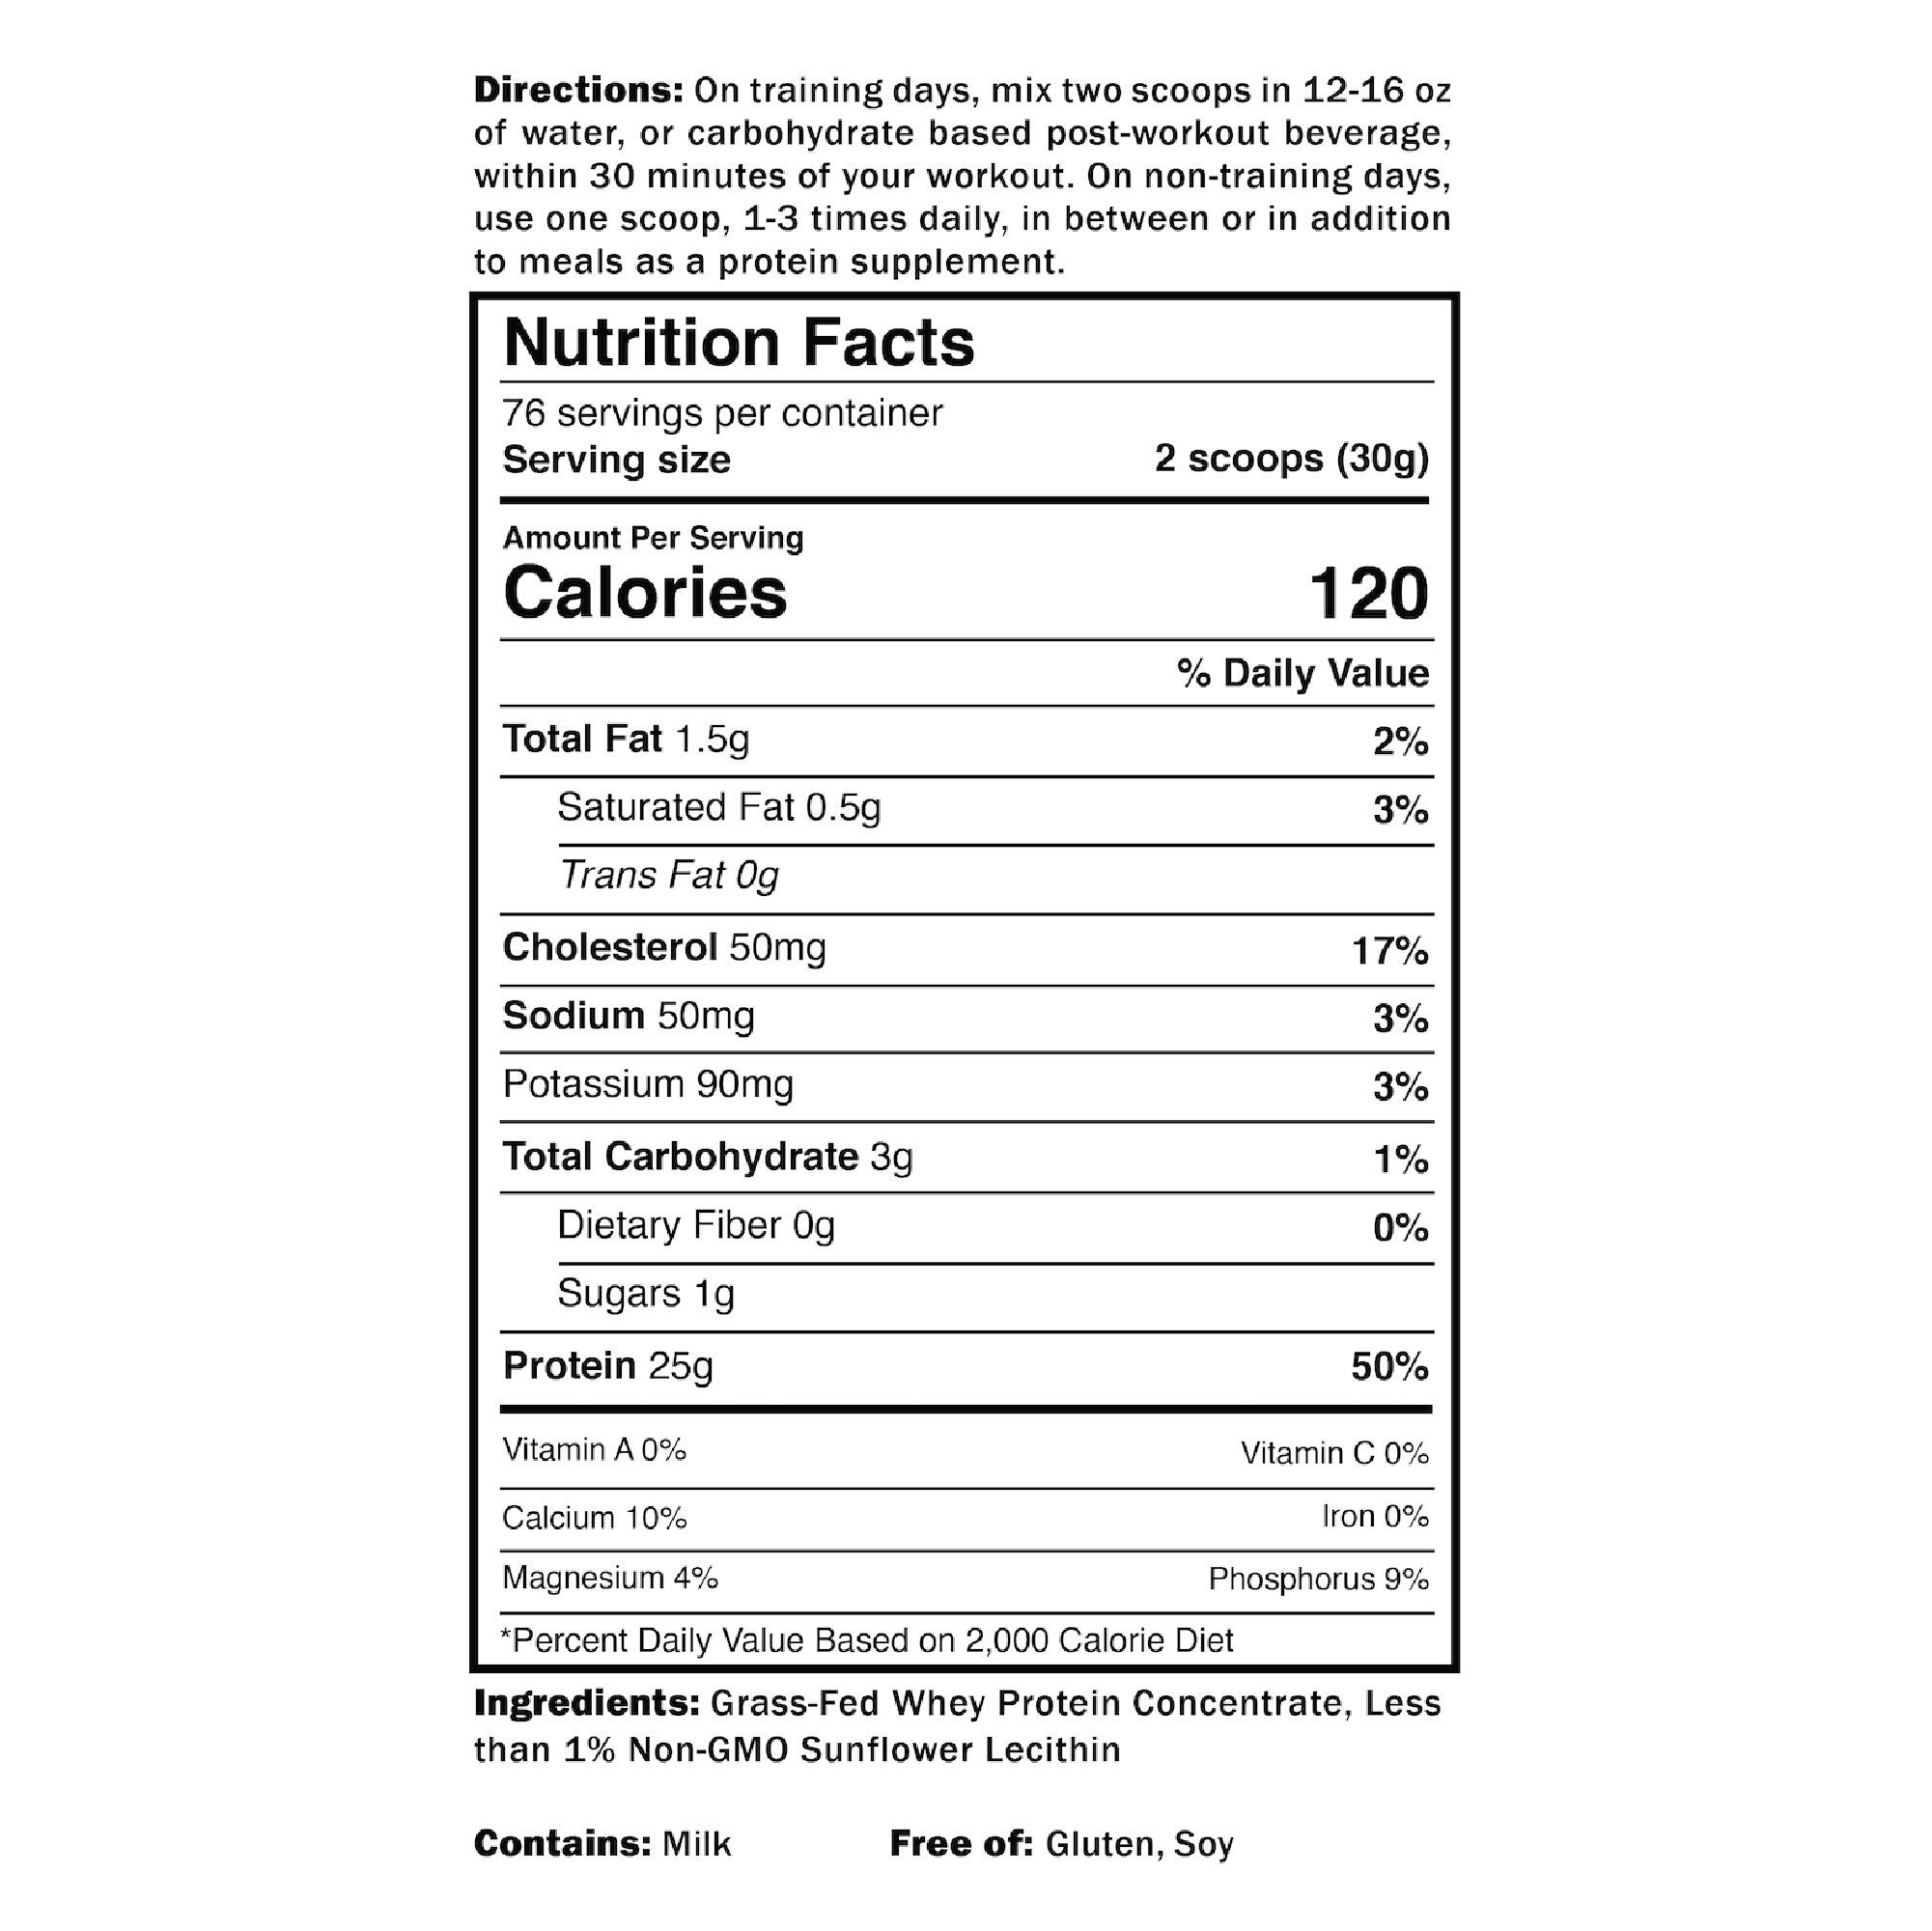 Grass Fed Whey Protein | 5lb | Unflavored Whey from California Cows | 100% Natural Whey | 2 Ingredients w/ No Sweeteners or Added Sugars | Non-GMO + Gluten Free + Preservative Free | Pure Promix_bulk by ProMix Nutrition (Image #4)